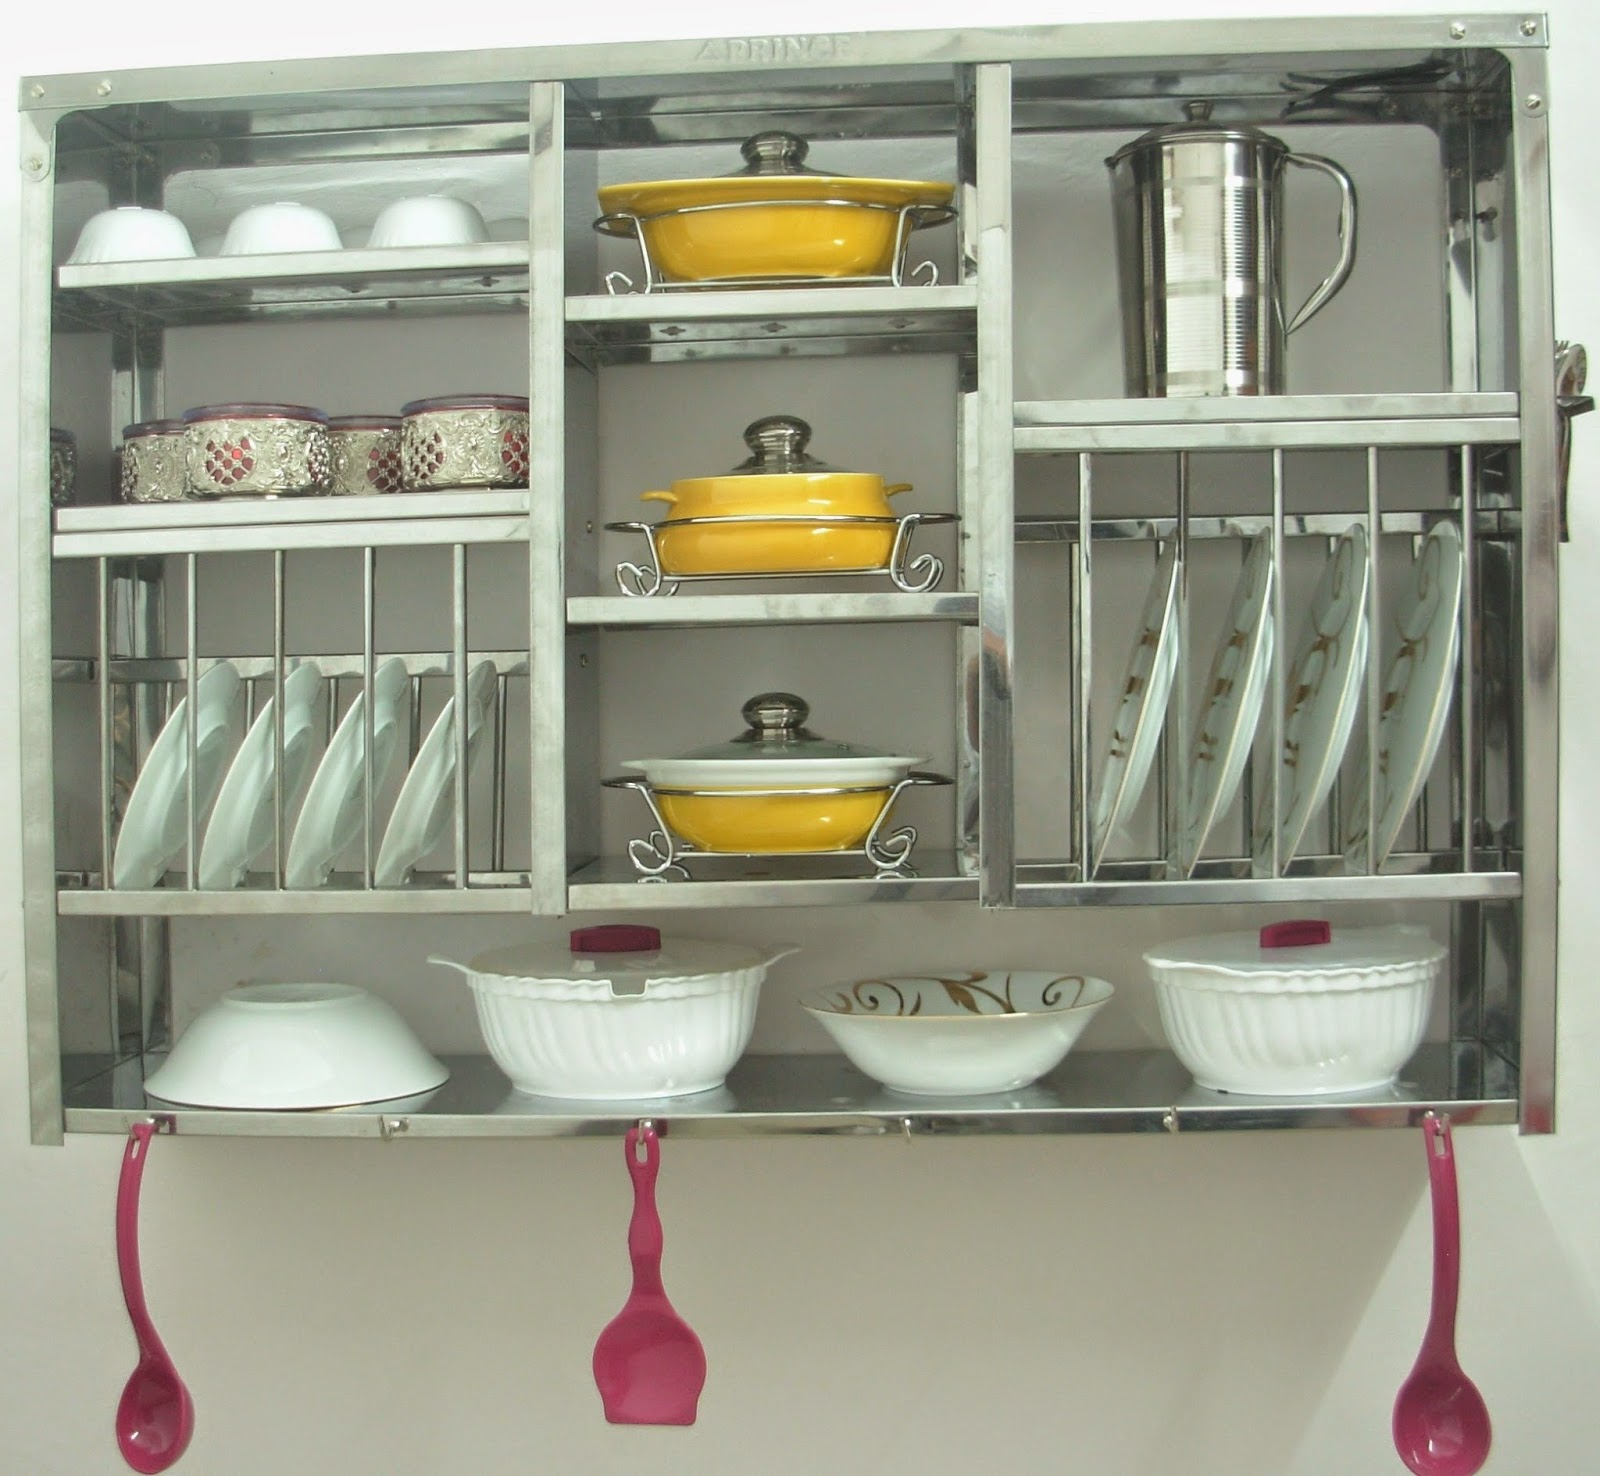 Plate Racks Dish Drying Racks & Shelf Racks